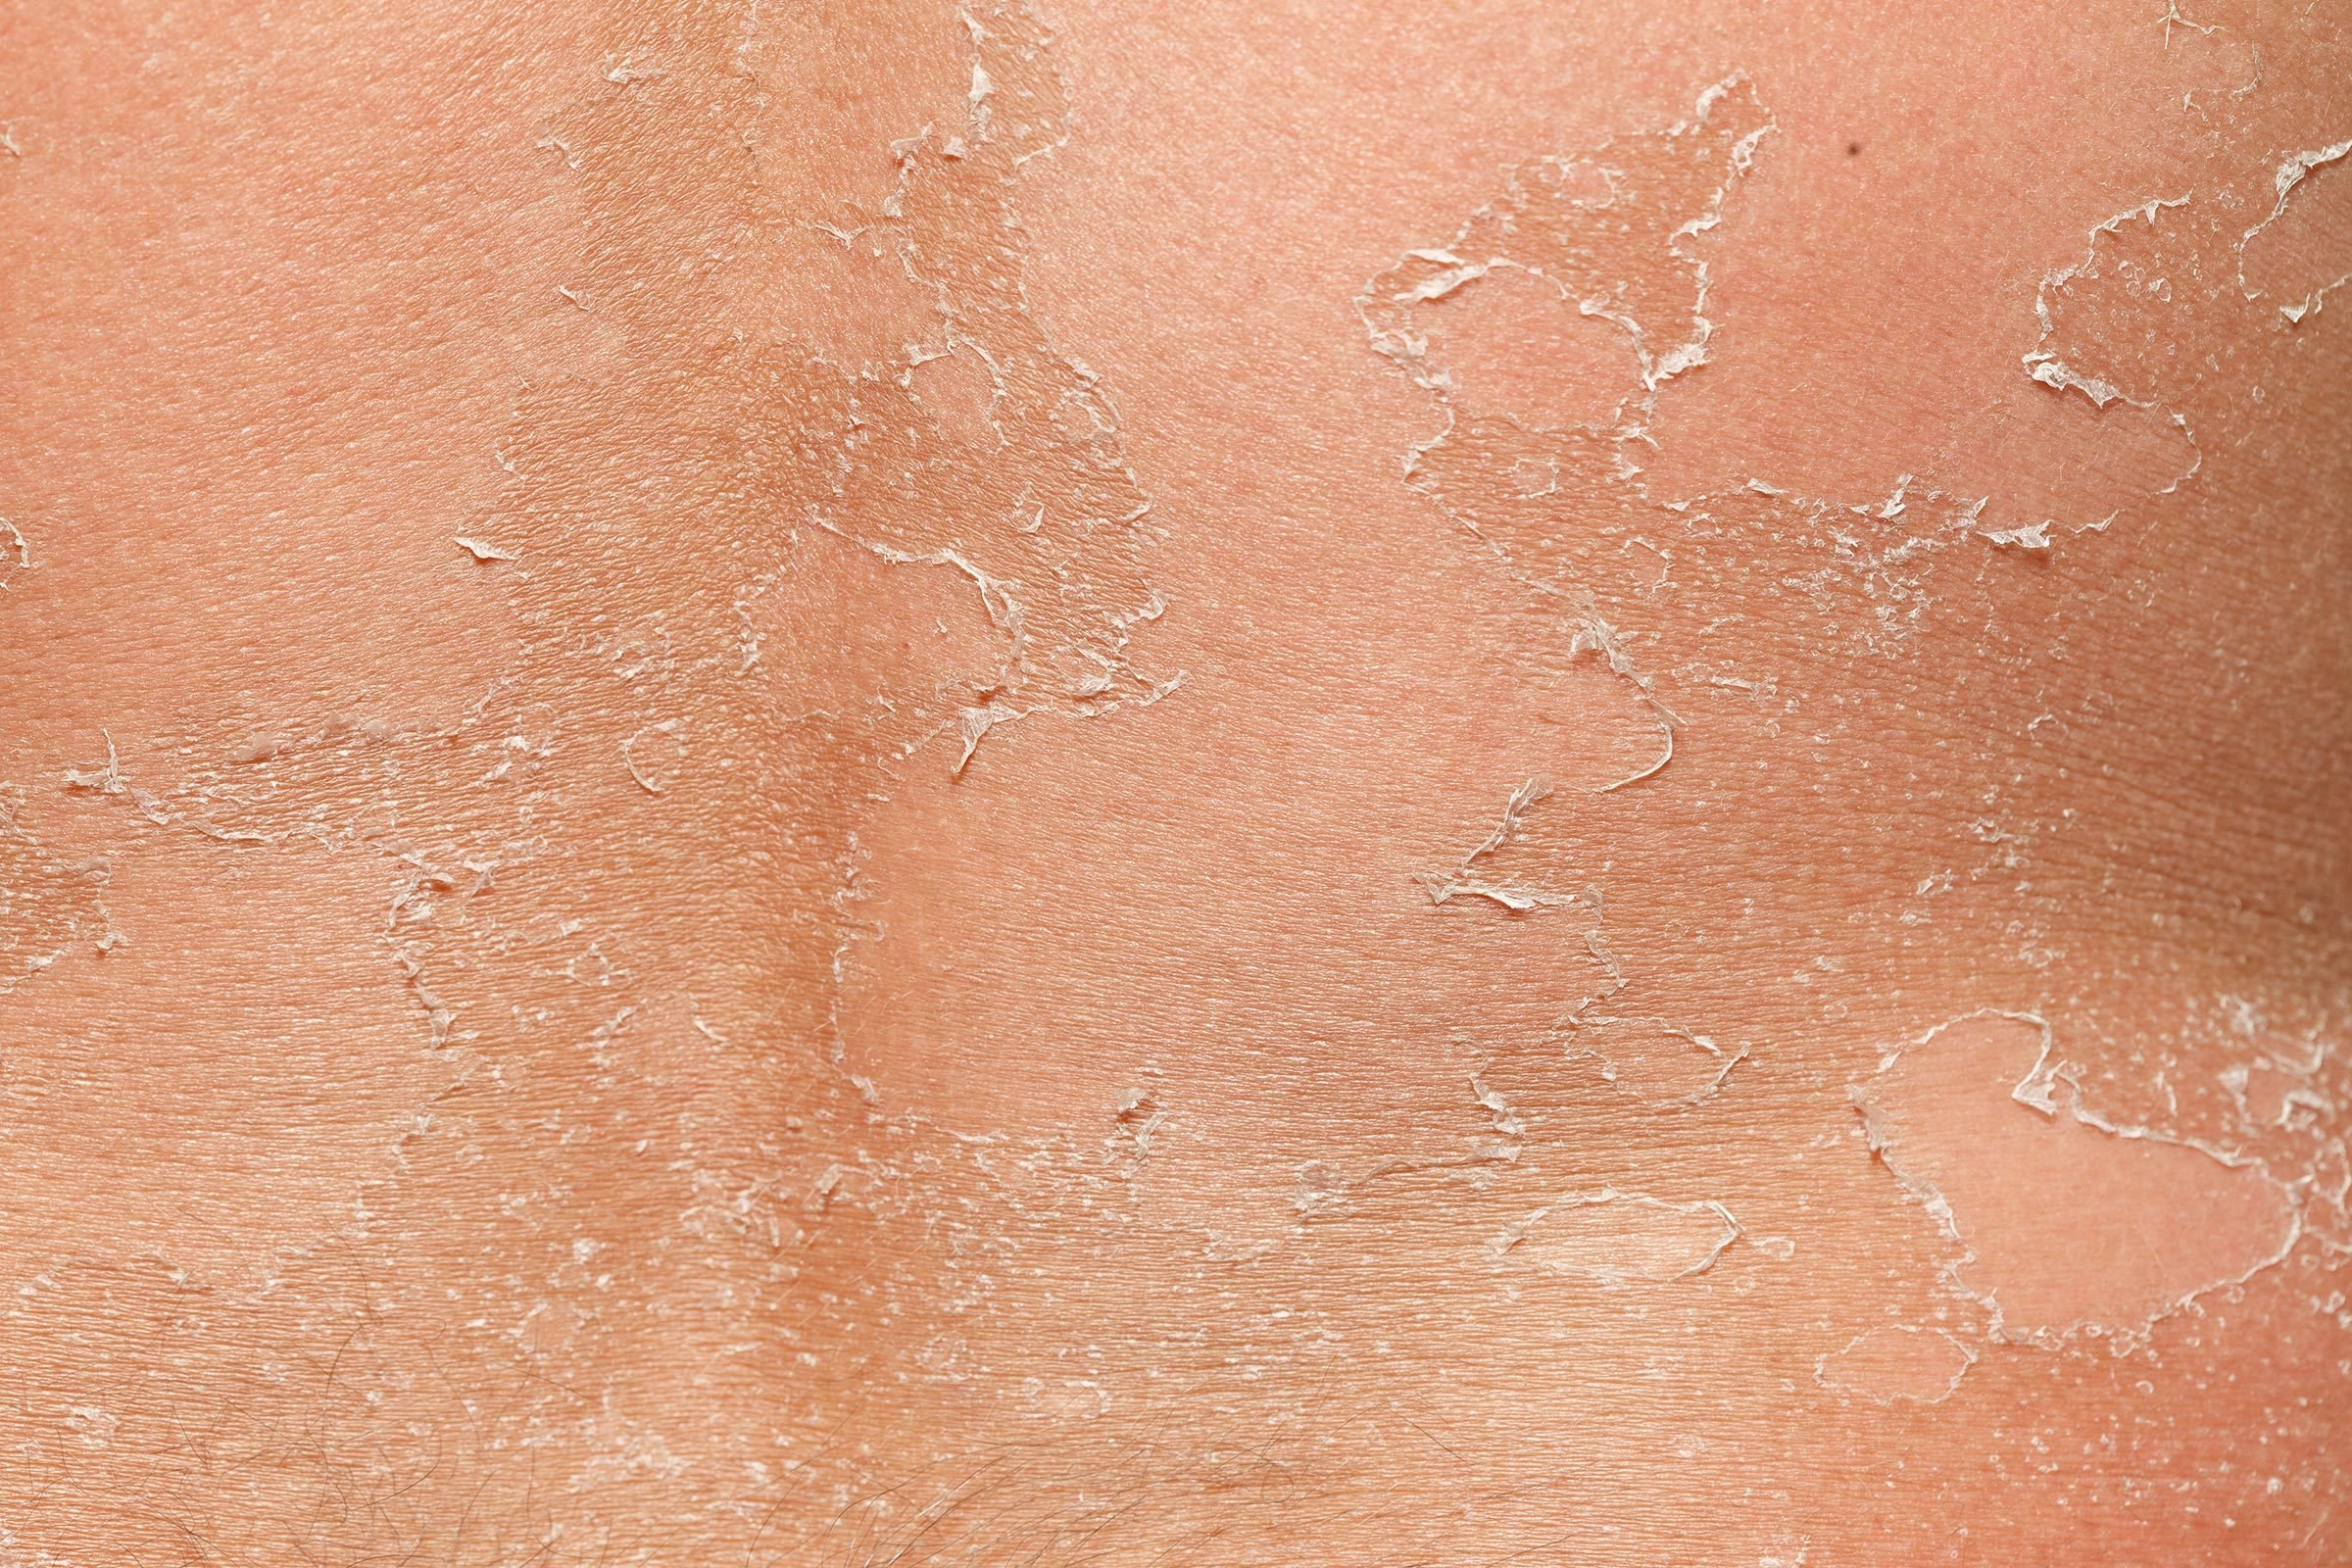 Skin Peeling: What Your Peeling Skin Wants to Tell You | The